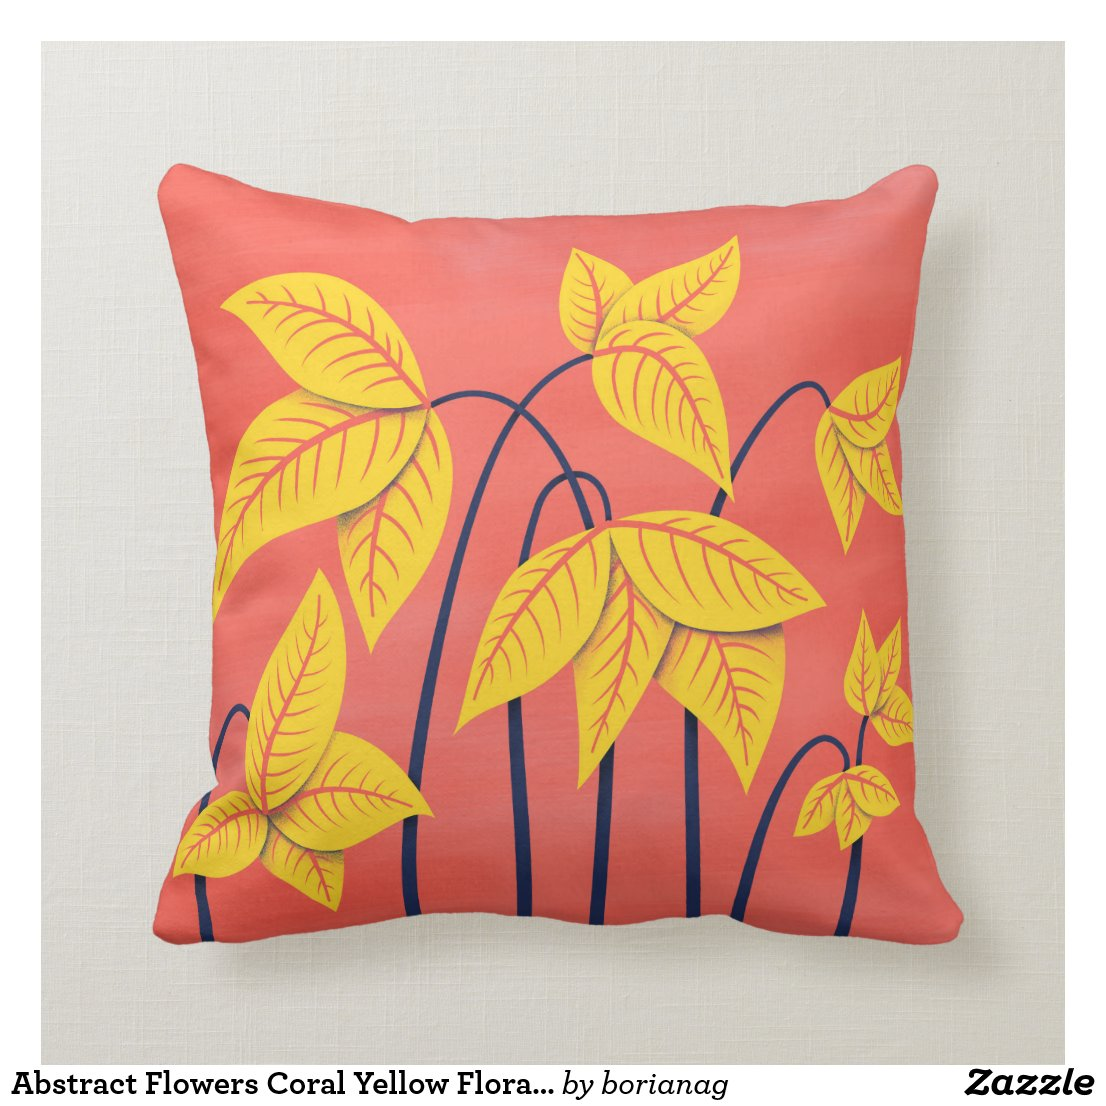 Abstract Flowers Coral Yellow Floral Geometric Art Cushion